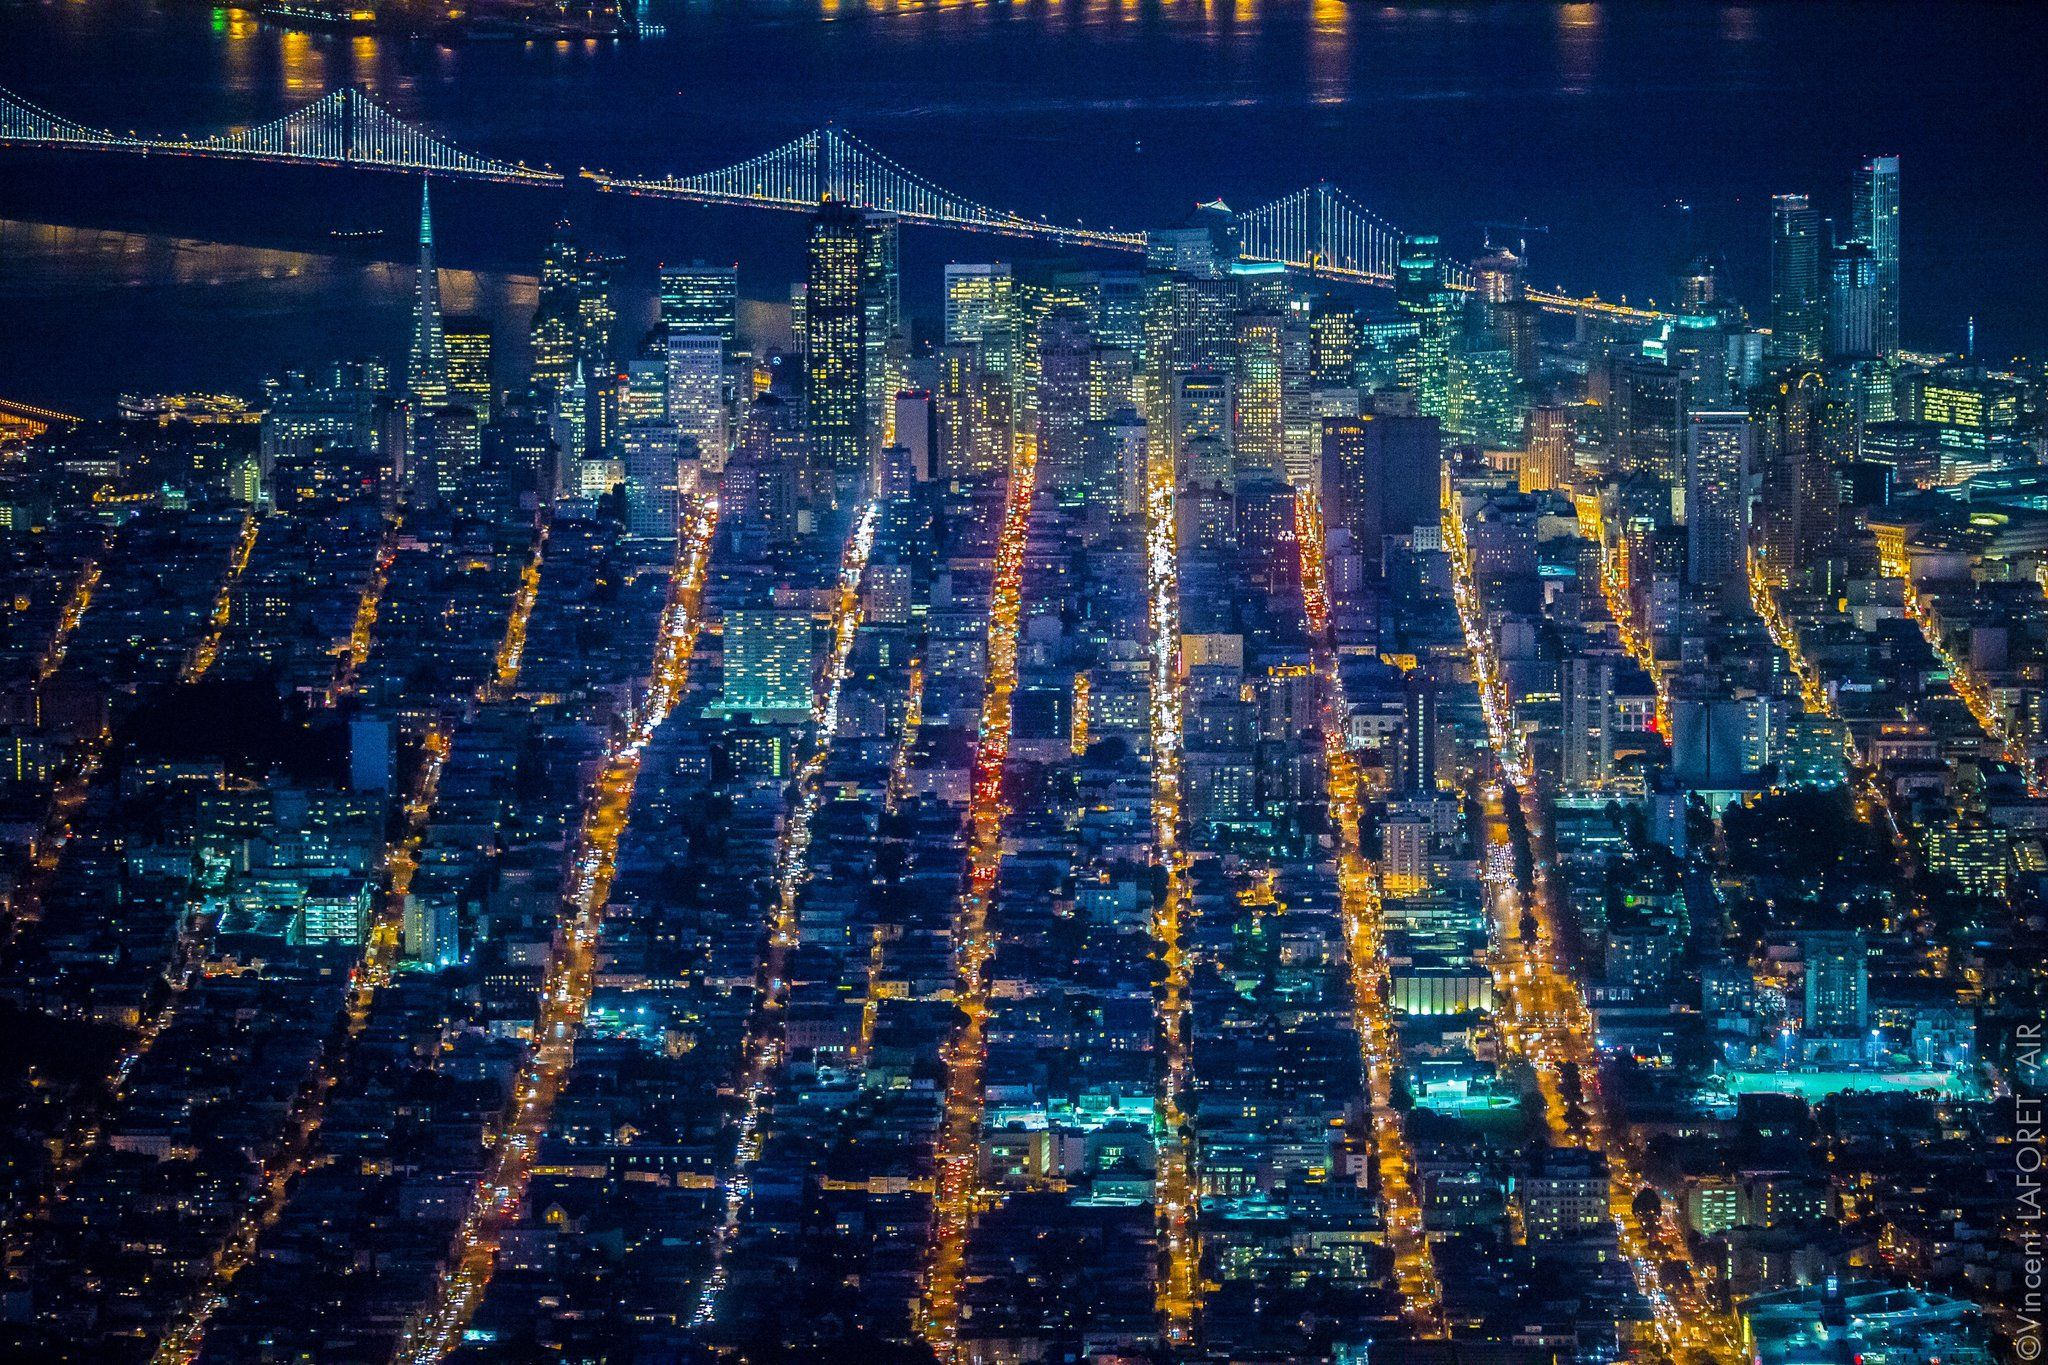 Aerial Photos Capture San Francisco's Nightlife from 7,200 Feet